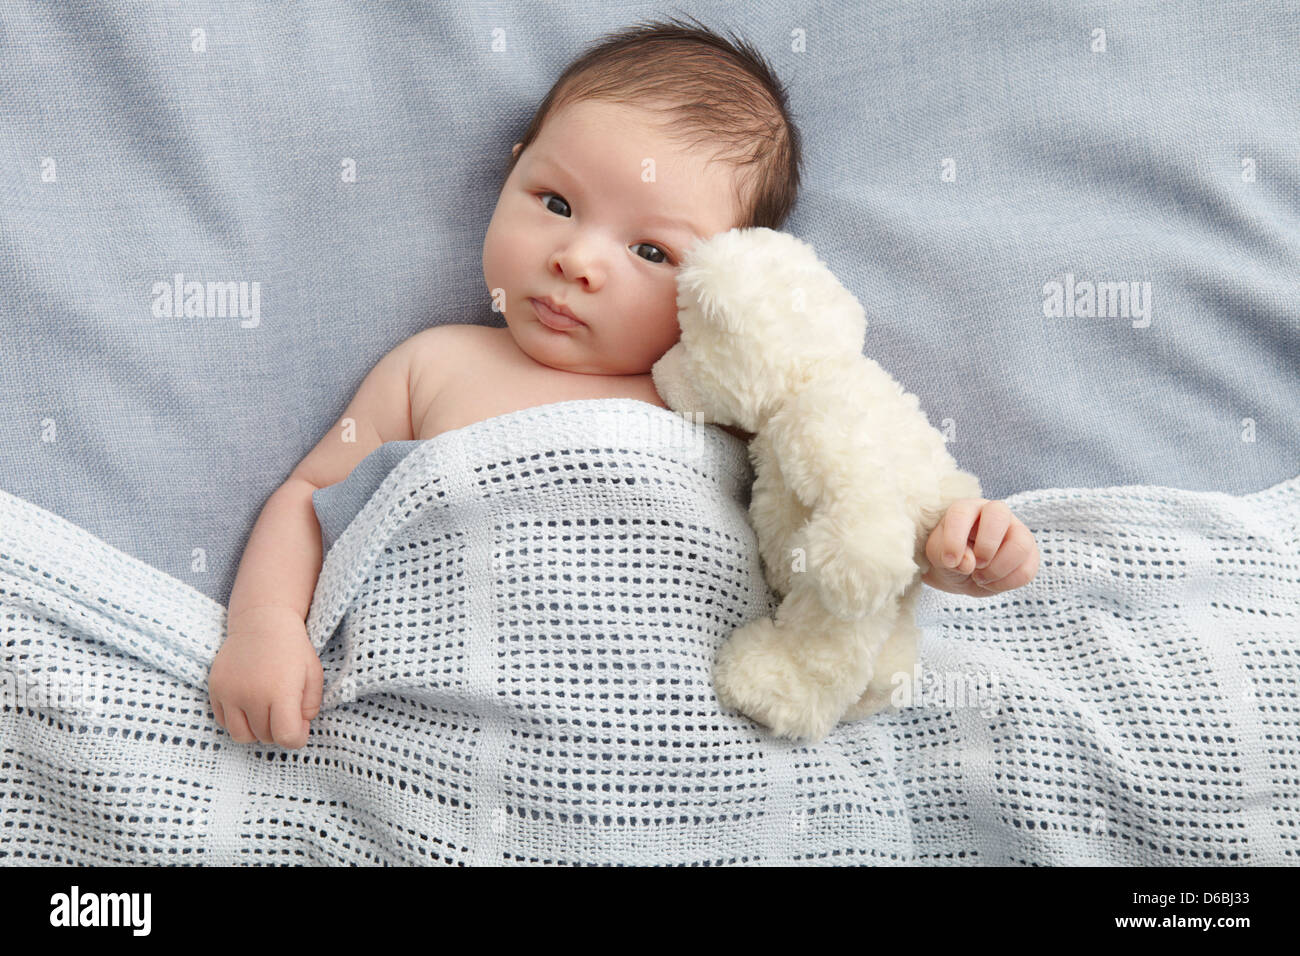 Baby boy and teddy bear laying in bed - Stock Image